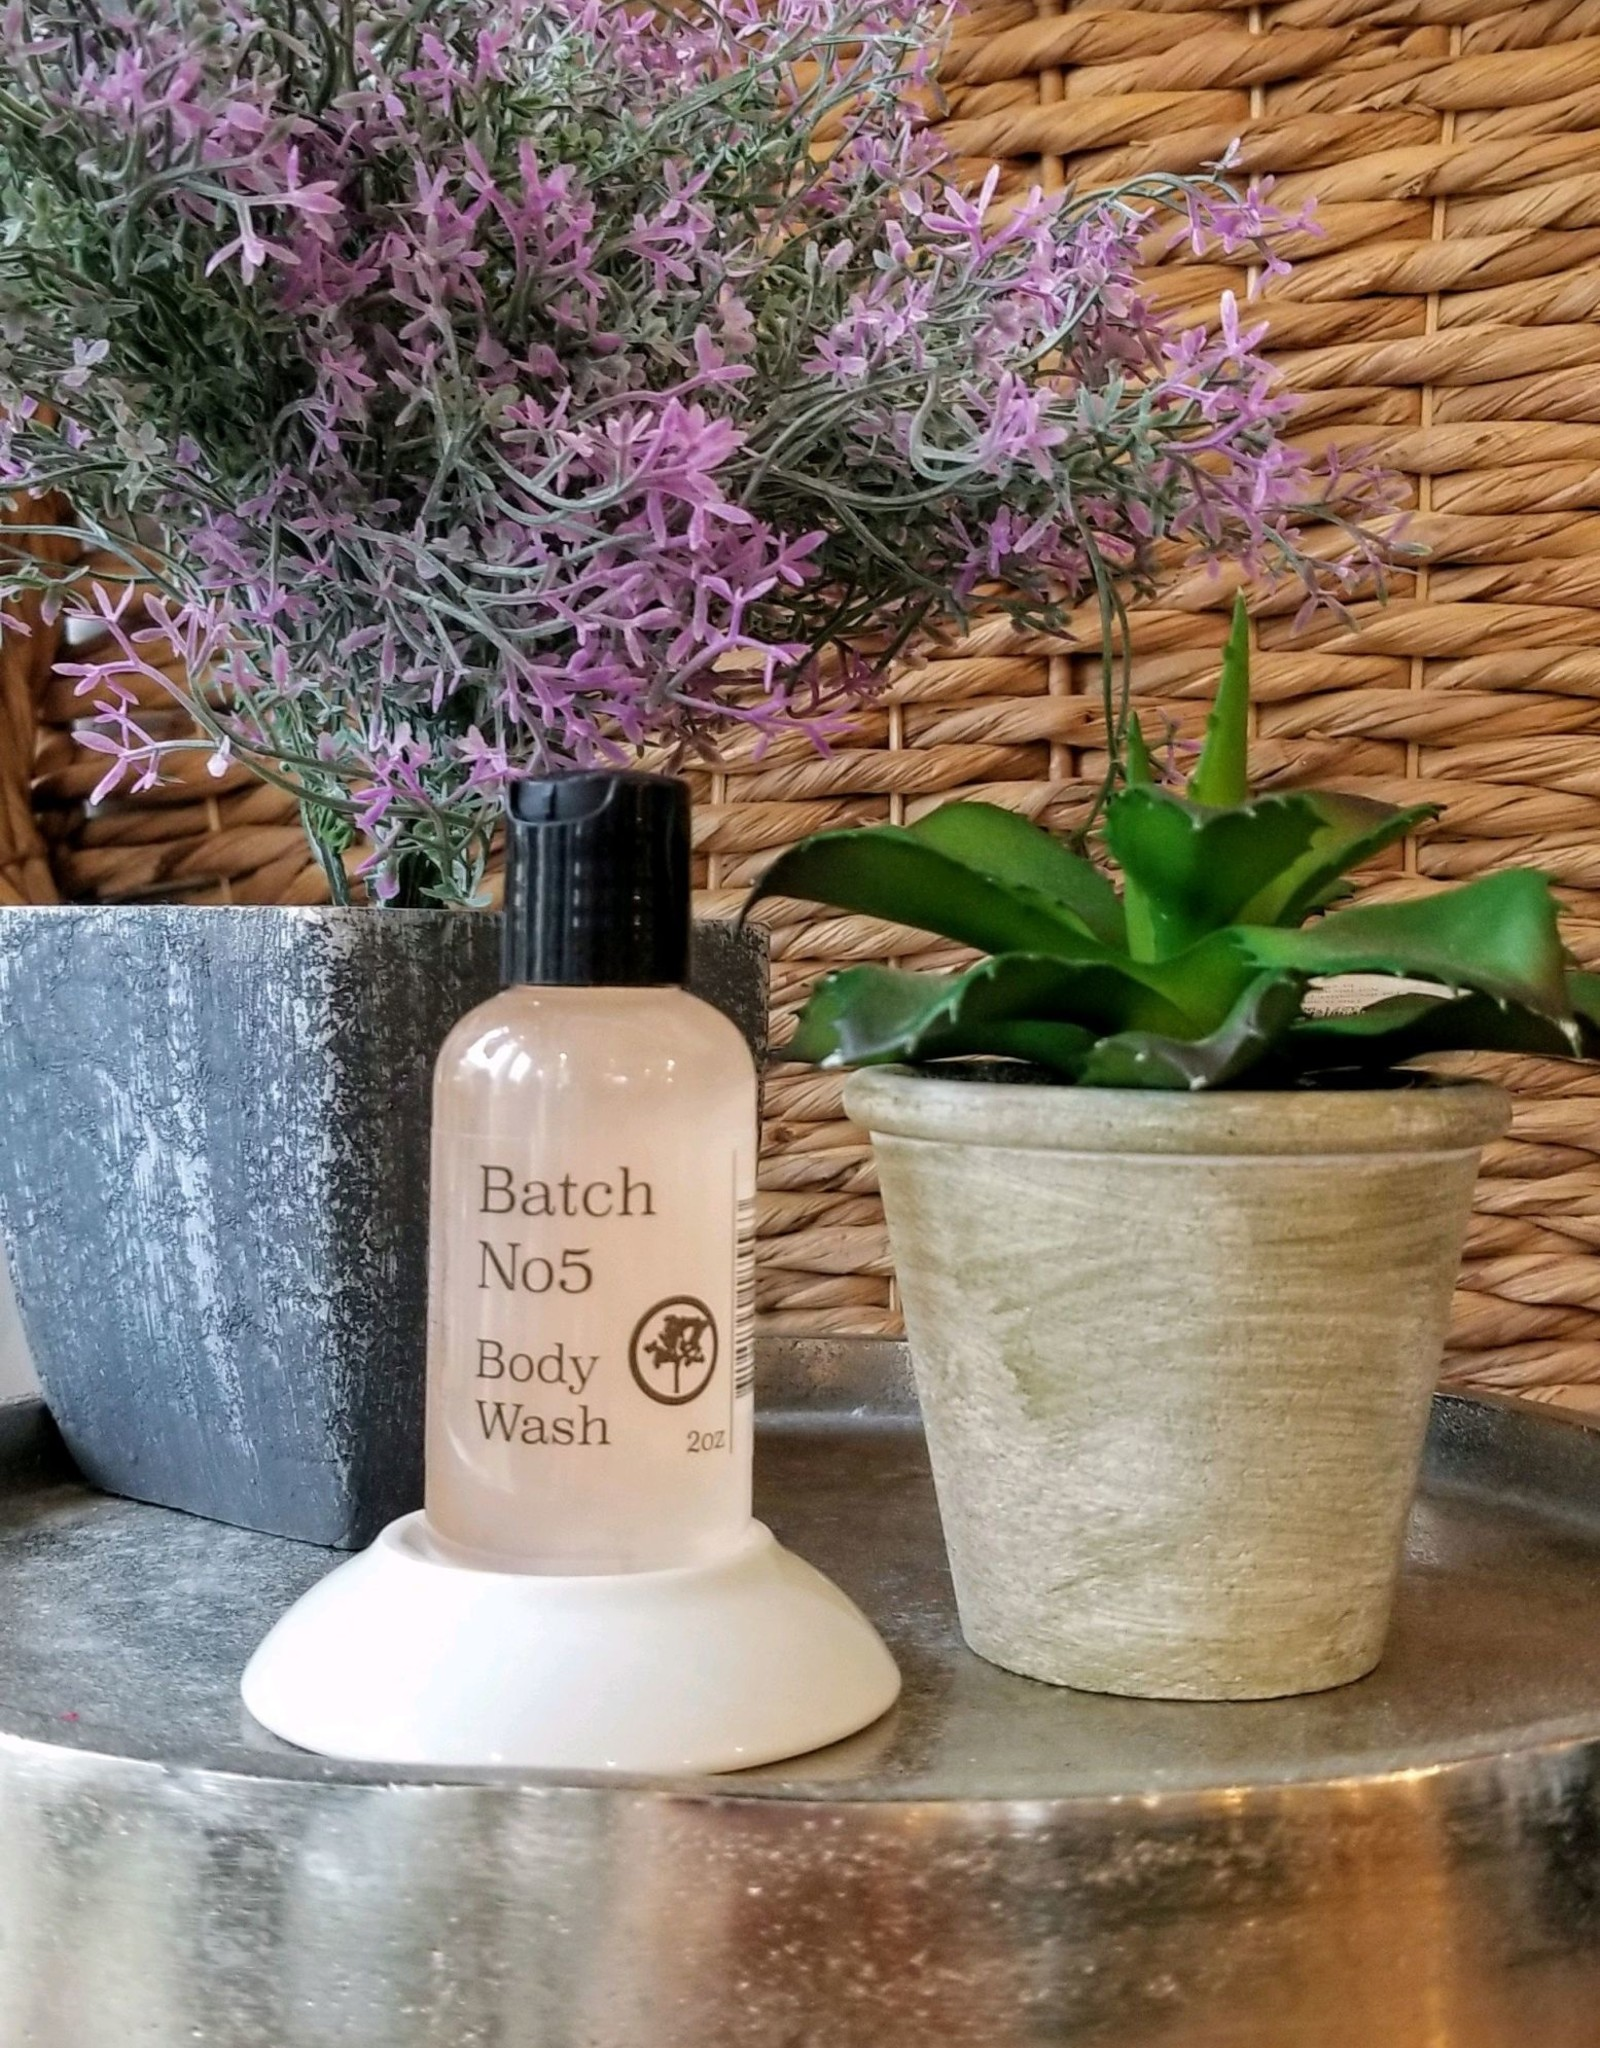 Simplified Soap 2oz Body Wash - Batch No5